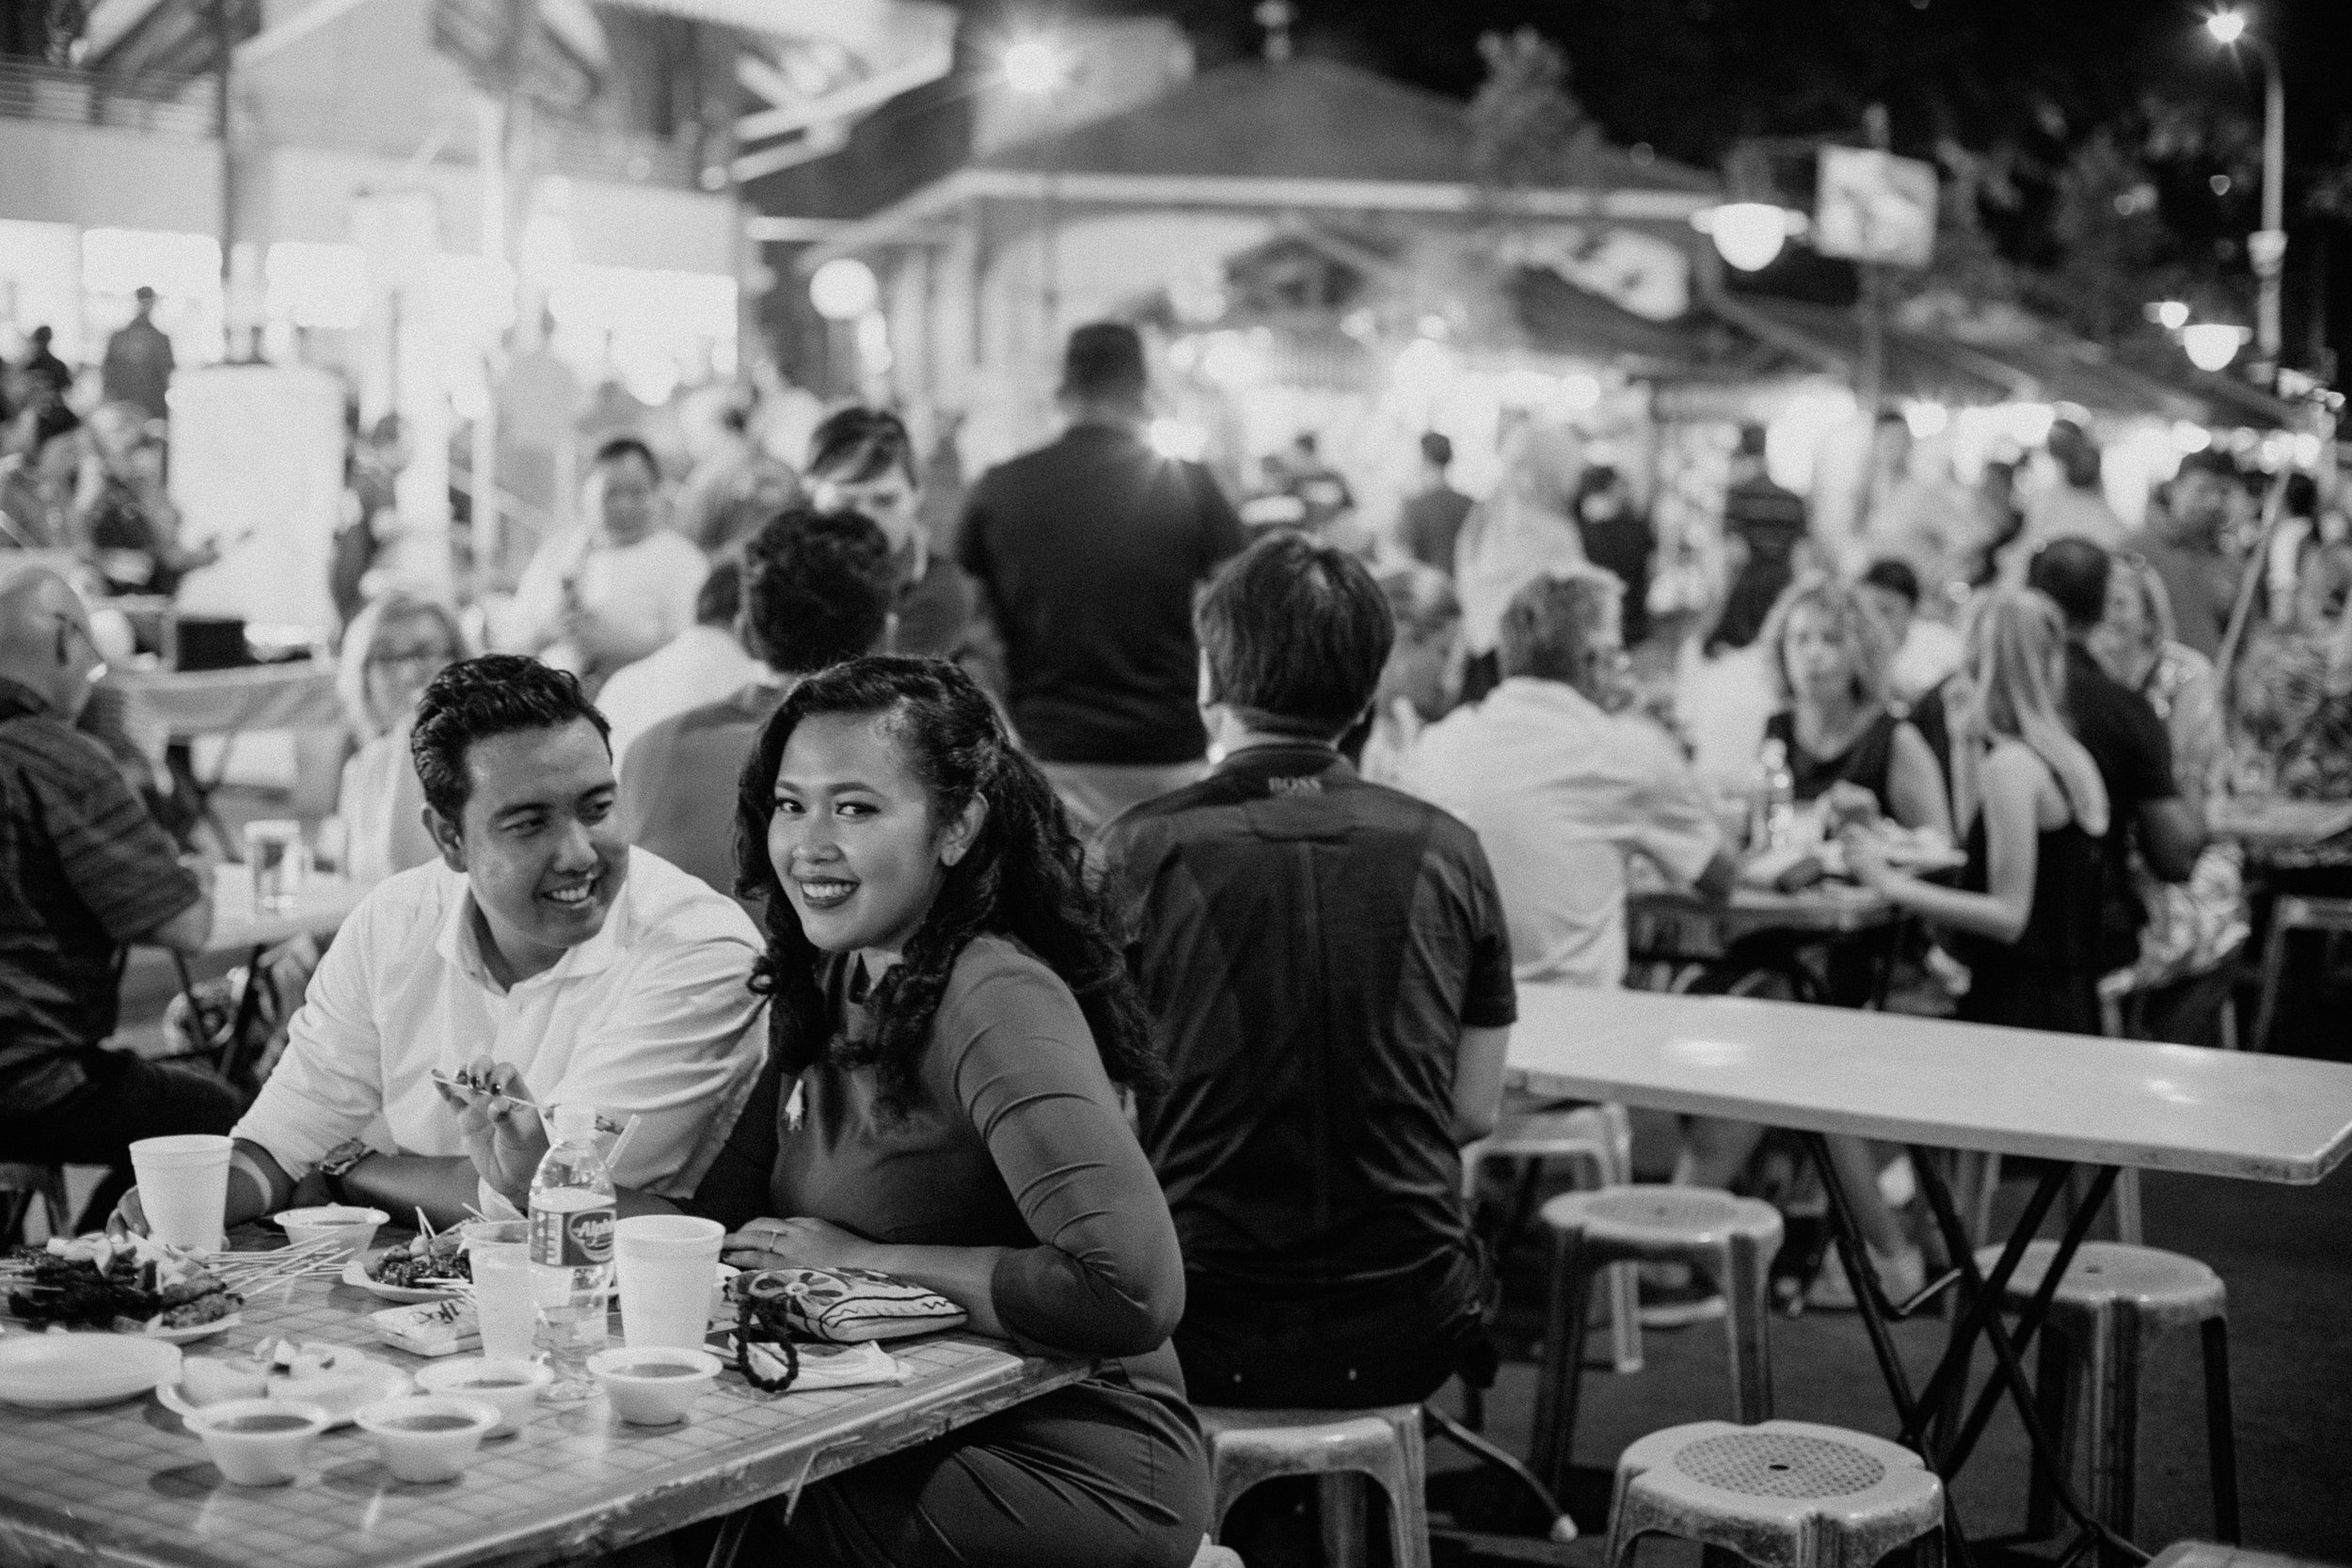 singapore-wedding-photographer-we-made-these-2016-selects-087.jpg